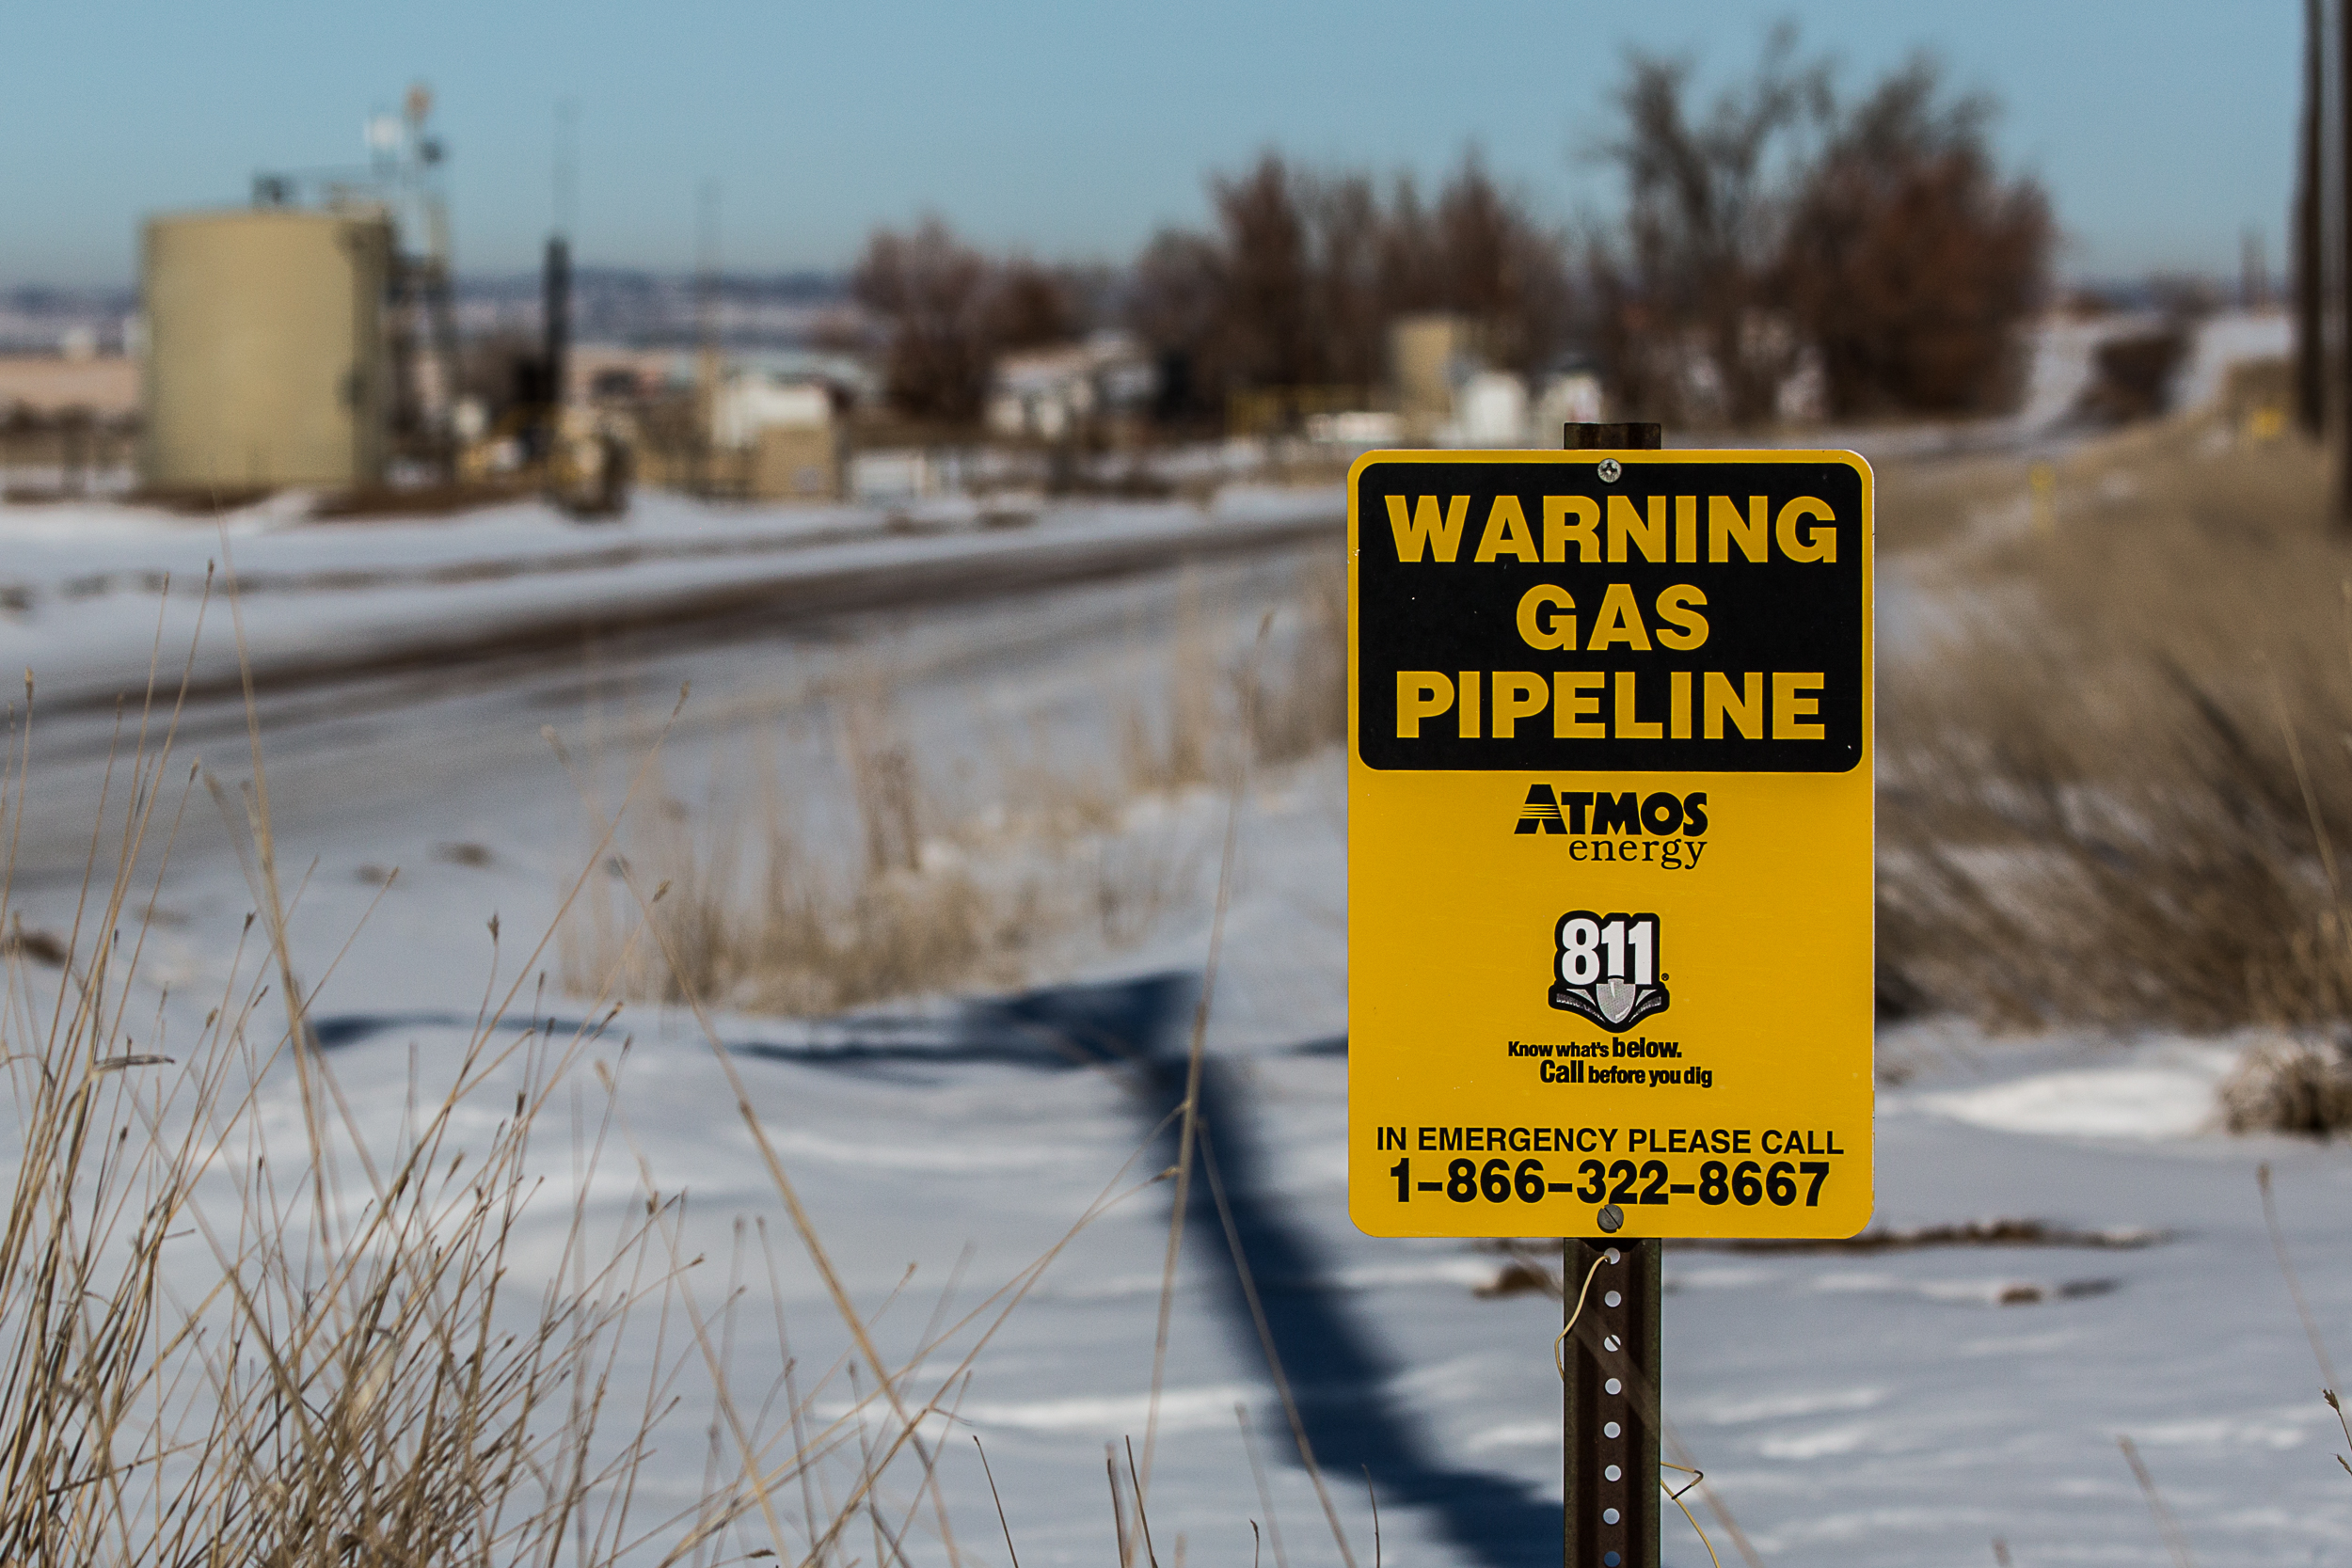 Natural gas pipeline warning signs in Weld County November 2019.